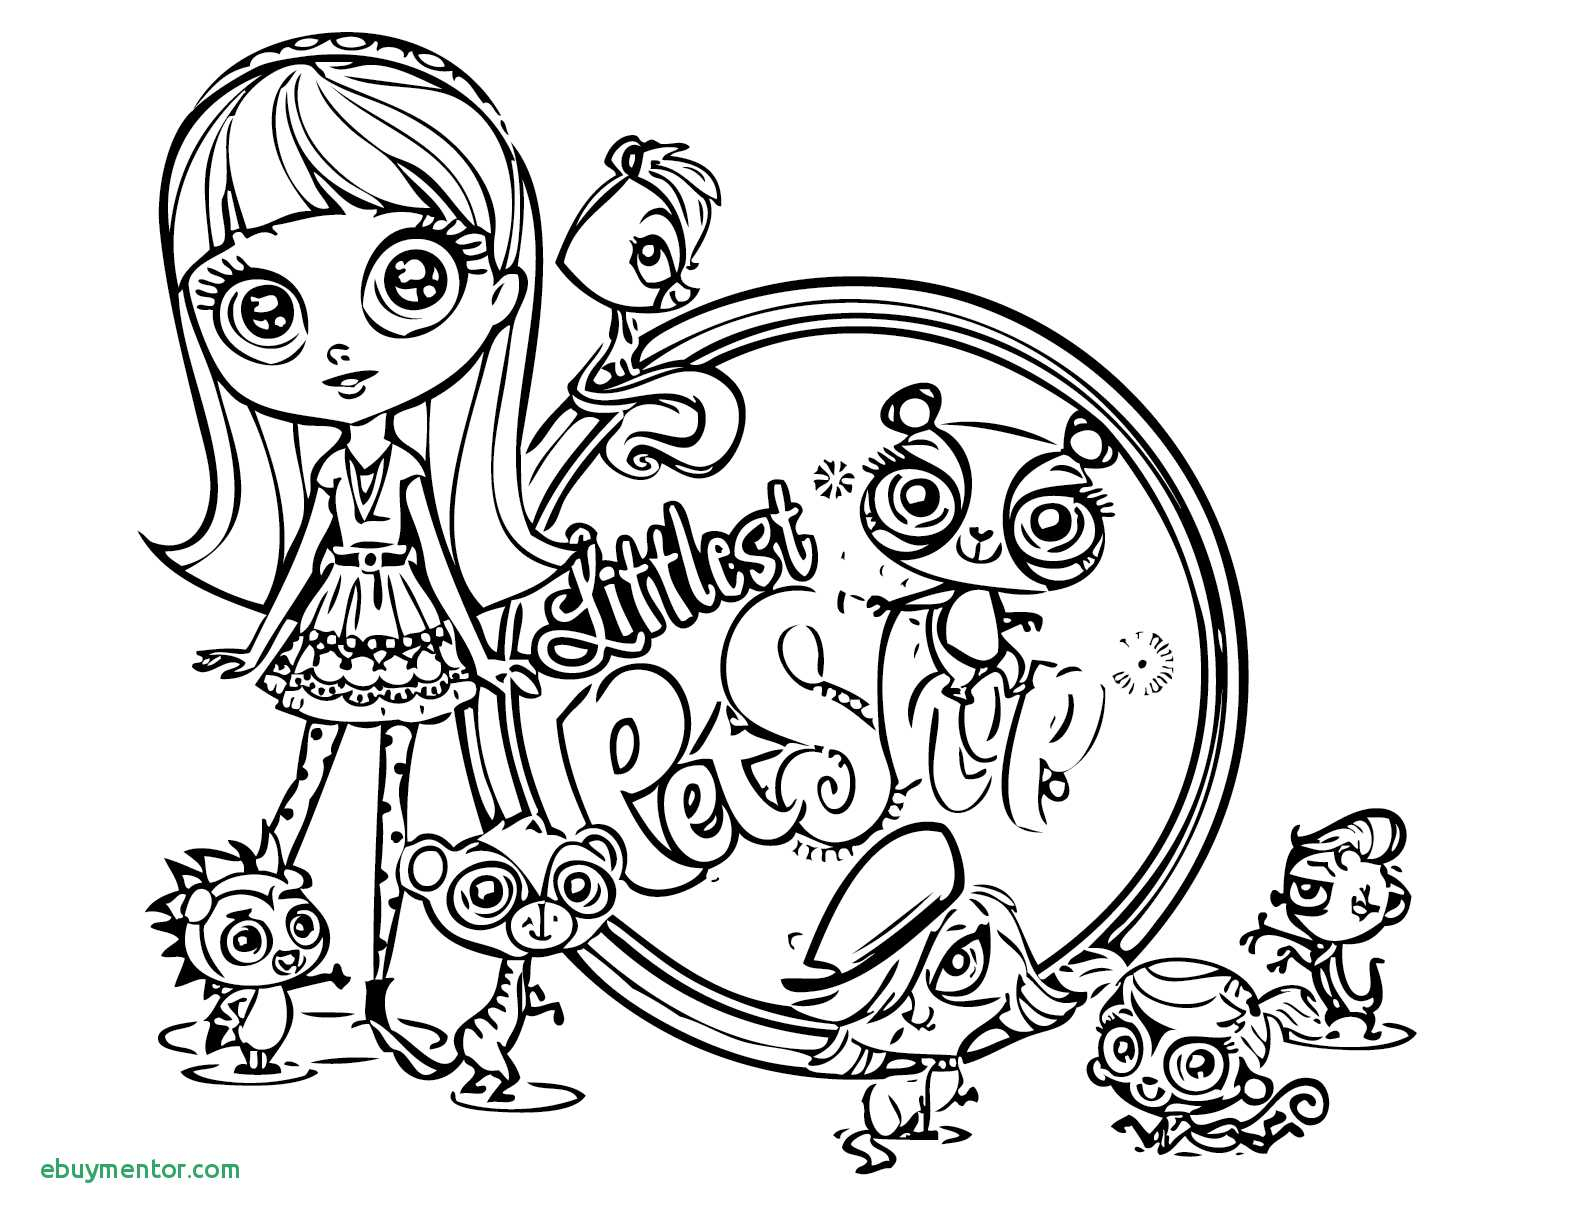 shopping coloring pages Collection-Littlest Petshop Coloring Pages Awesome Littlest Pet Shop Coloring Page Concept Printable Coloring 4-f